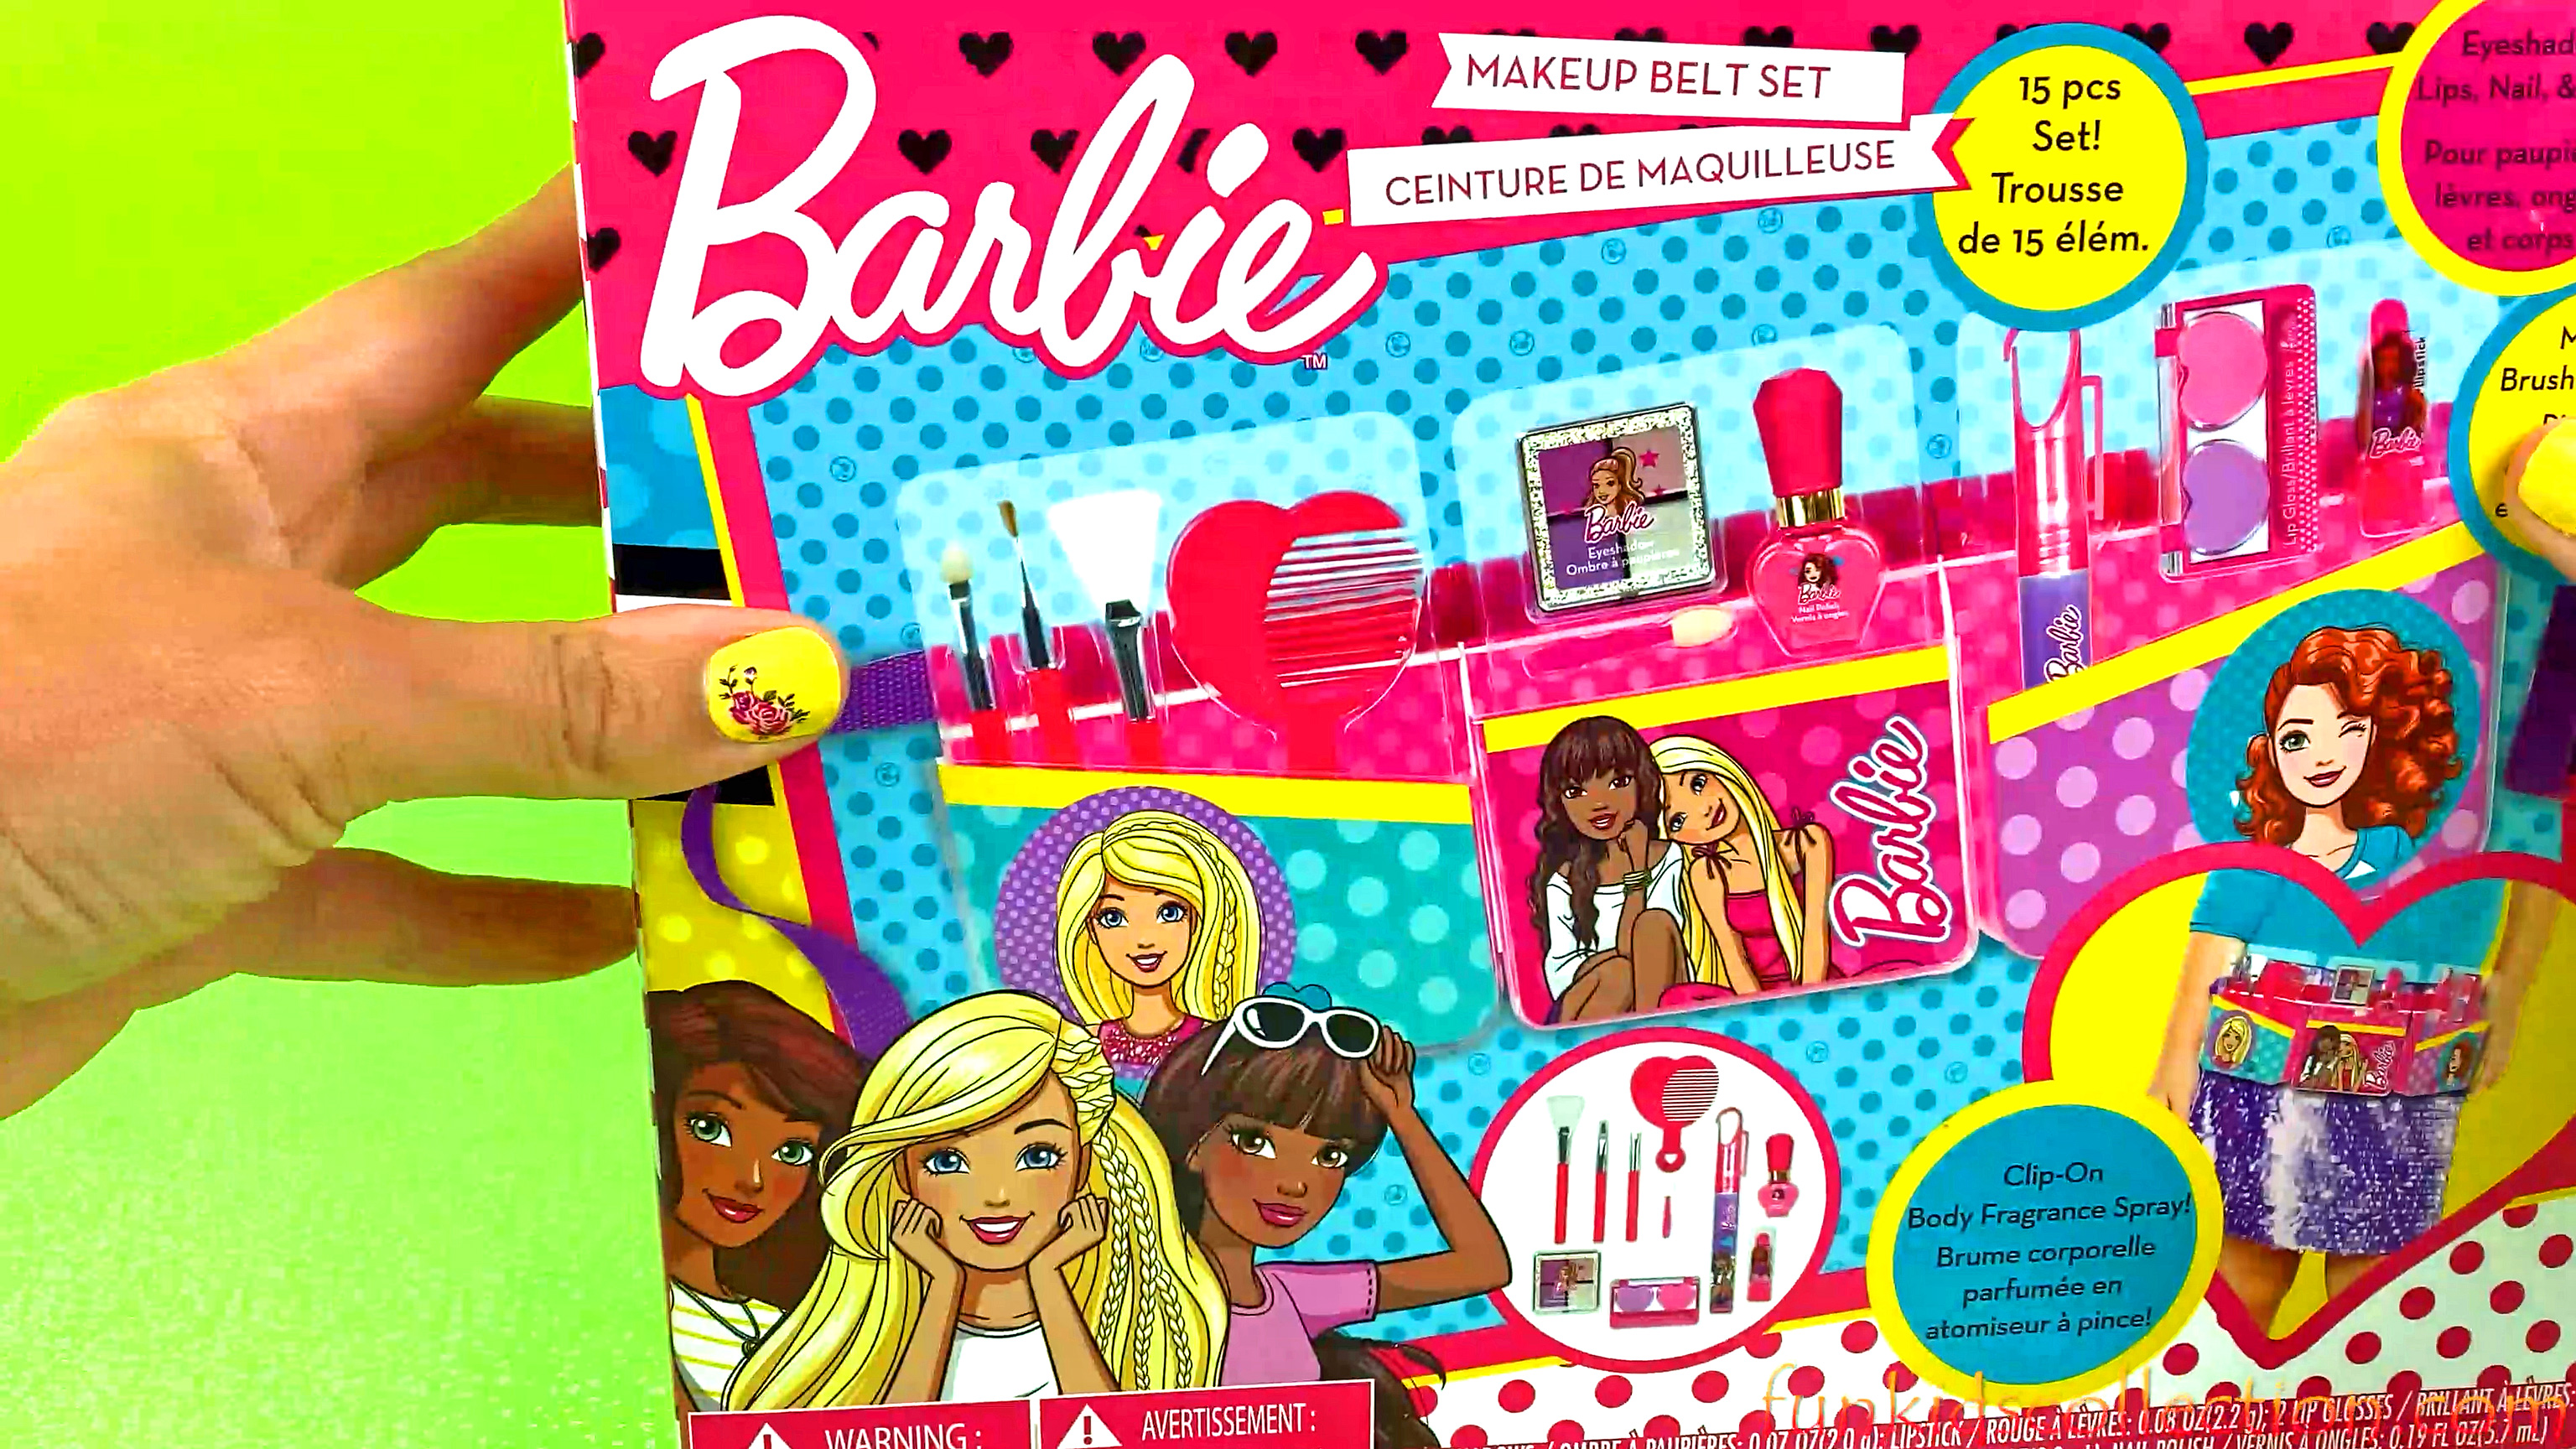 Barbie Makeup Belt Set 15 pcs | Barbie Eyeshadow Lips Nail Body Makeup Brushes and more